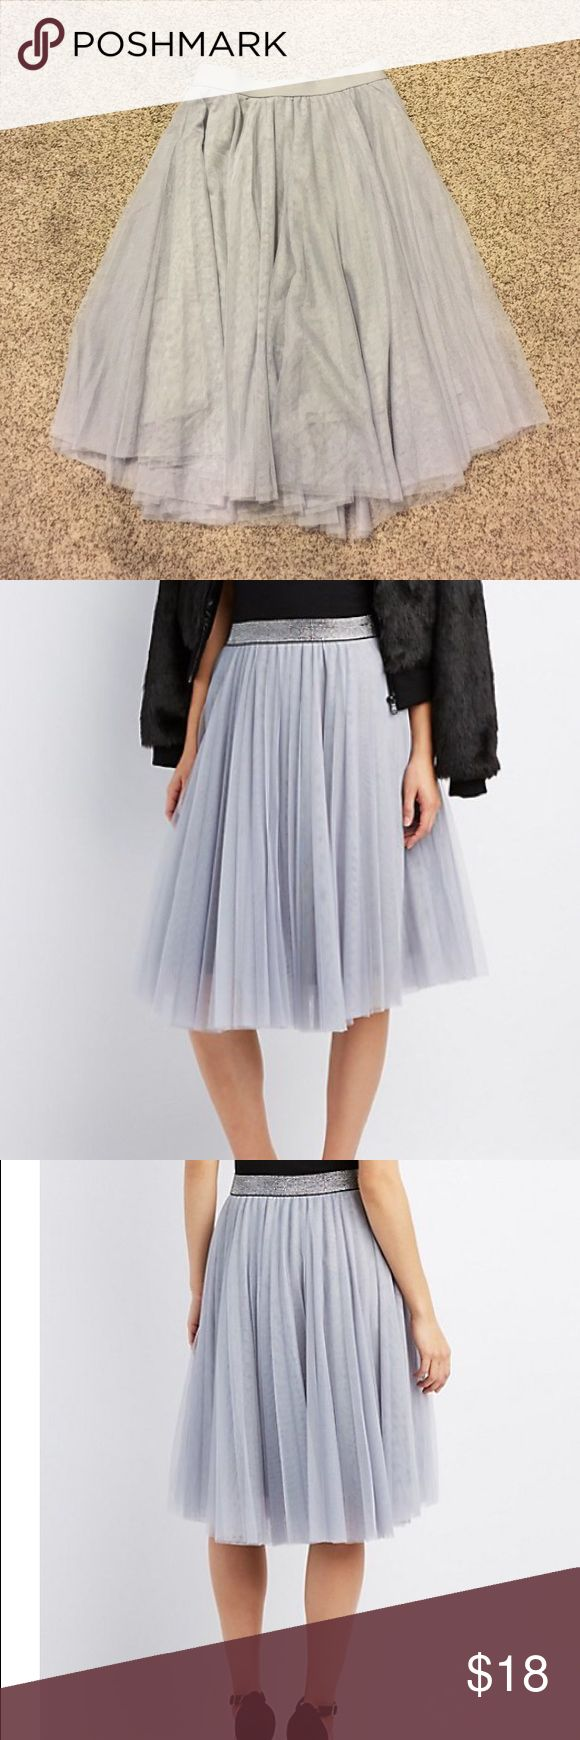 NWT tulle skirt in a silvery gray This skirt is brand new, hits midi length. Beautiful tulle material with elastic waistband Charlotte Russe Skirts